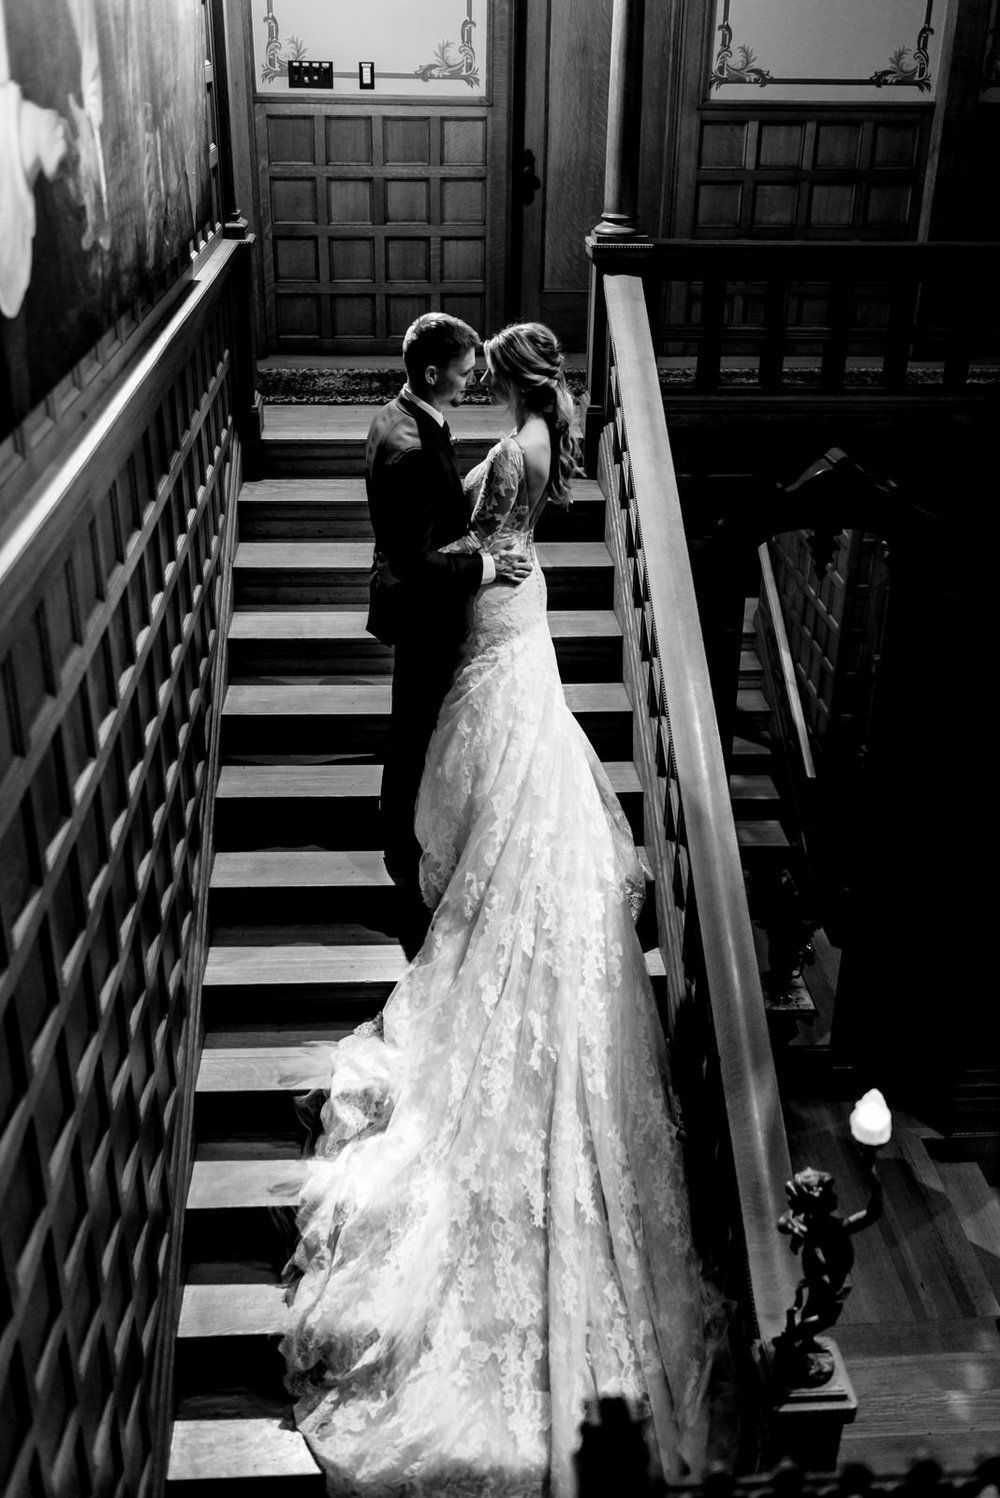 Romantic Bride And Groom Portraits On The Stairs At